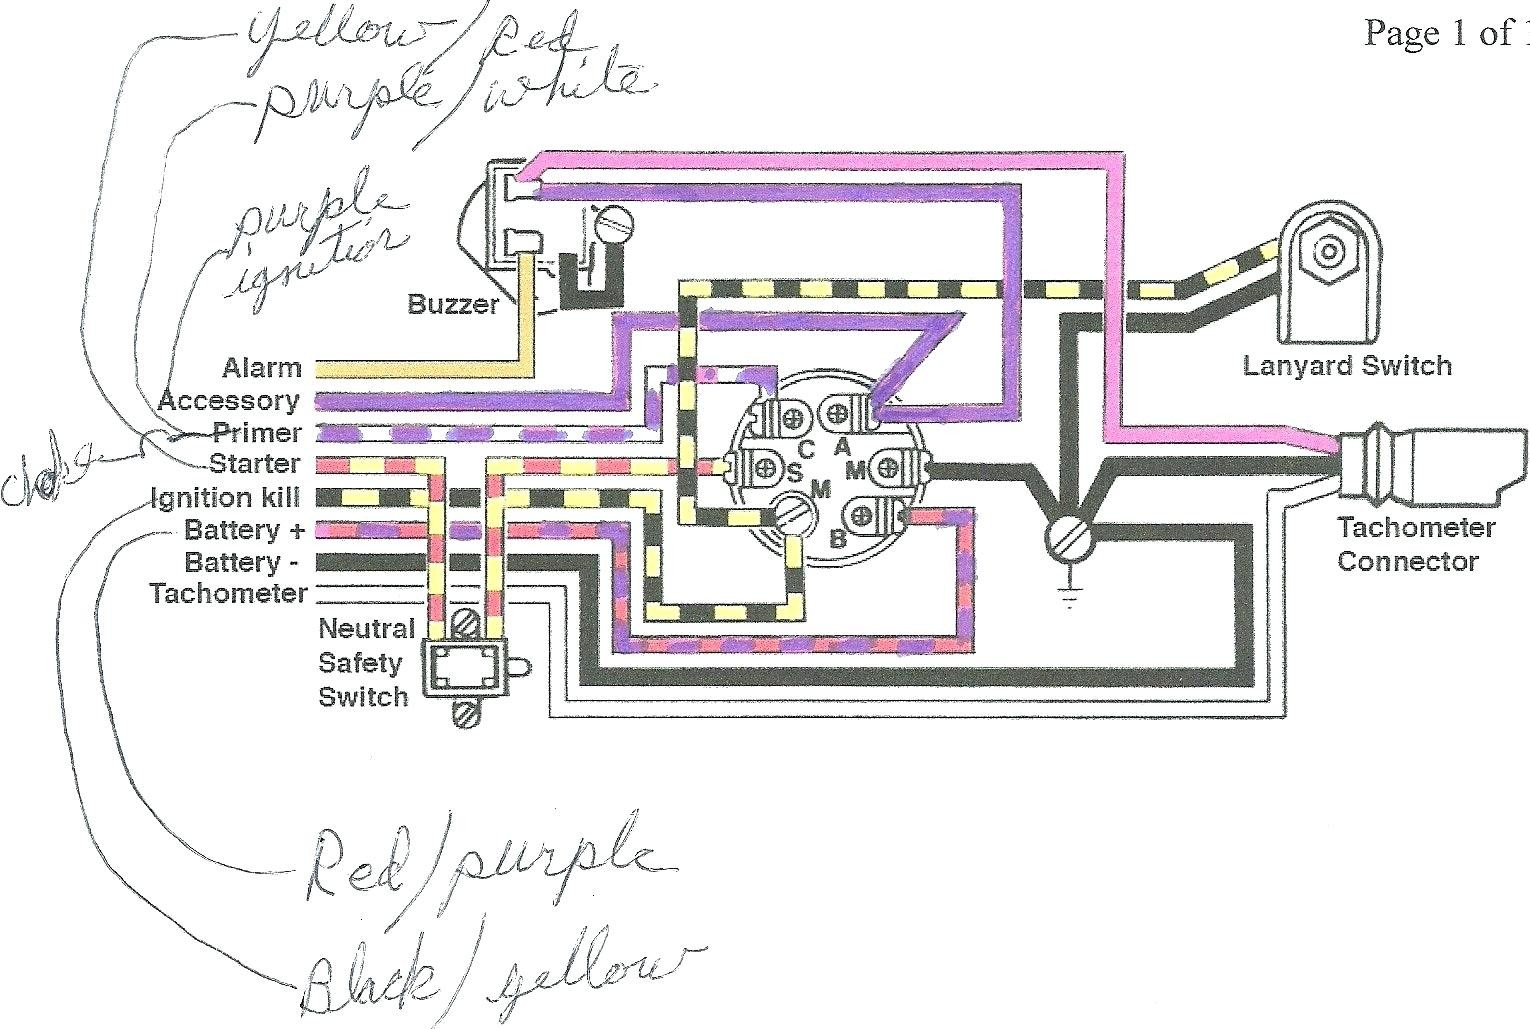 Wiring Diagram For Murray Lawn Mower - Wiring Diagrams Click - Murray Lawn Mower Ignition Switch Wiring Diagram